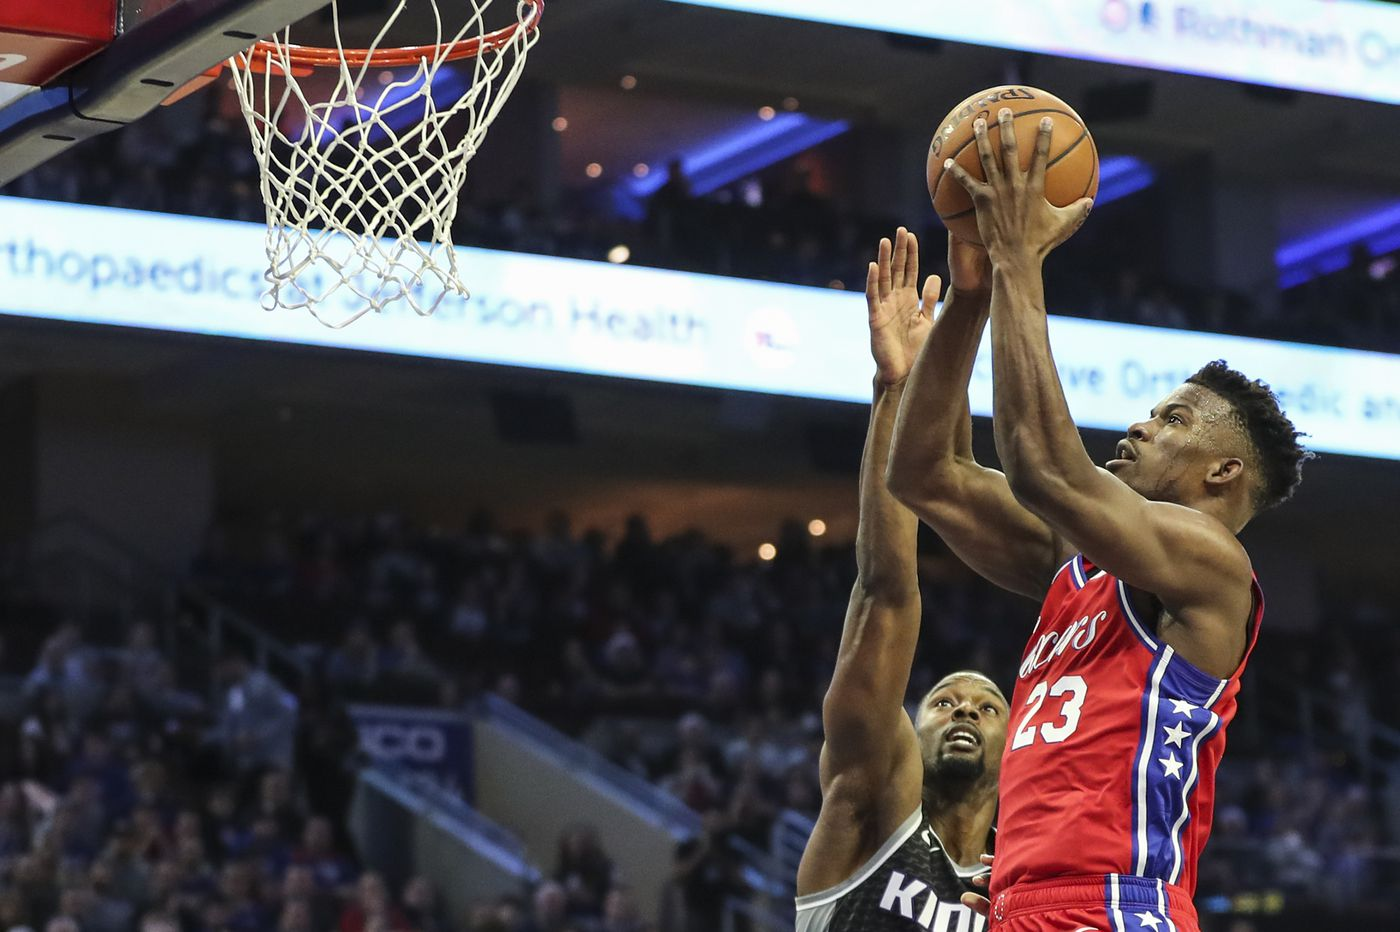 Sixers-Kings observations: New substitution pattern, balanced scoring, Jimmy Butler being Jimmy Butler